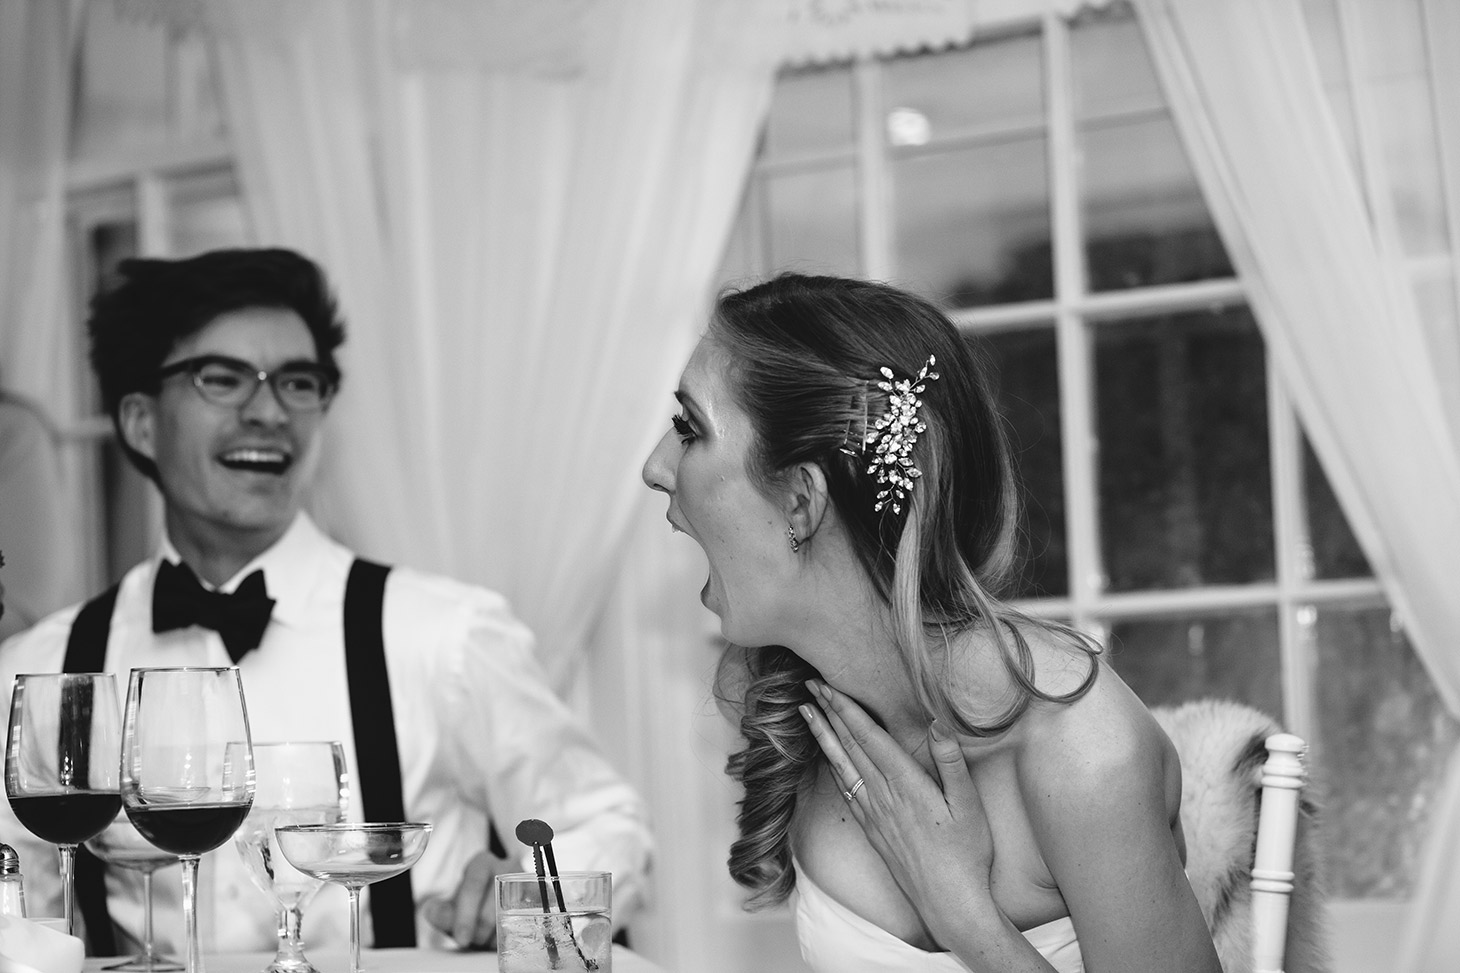 Megan-Newton-Photography-Best-Wedding-Photos-2015-301